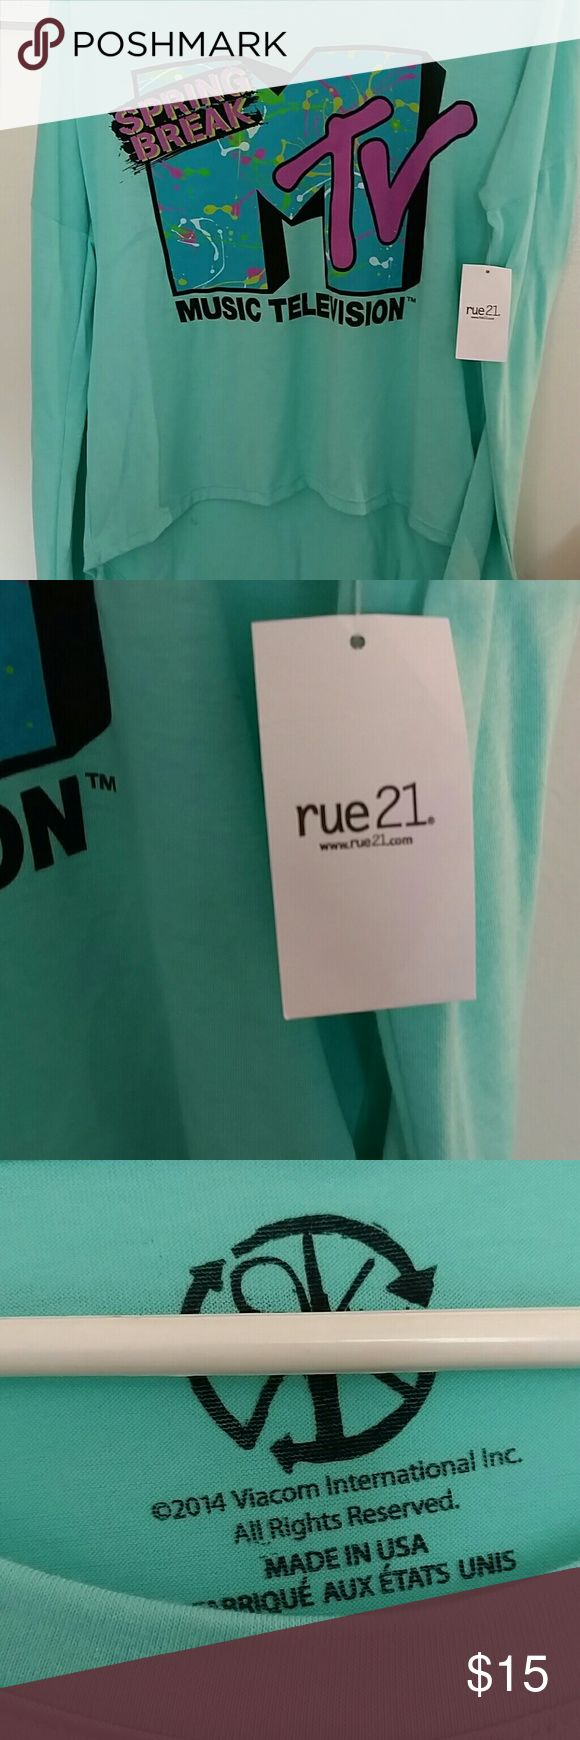 NW2 you rue21 women's top MTV TV long sleeve 2014 new attacks Music Television spring break themed MTV long sleeve off Greene. By Rue 21 really cute shirt. Measurements are from neck to sleeve 28 inch and 20 inches across size small Rue 21 Tops Tees - Long Sleeve